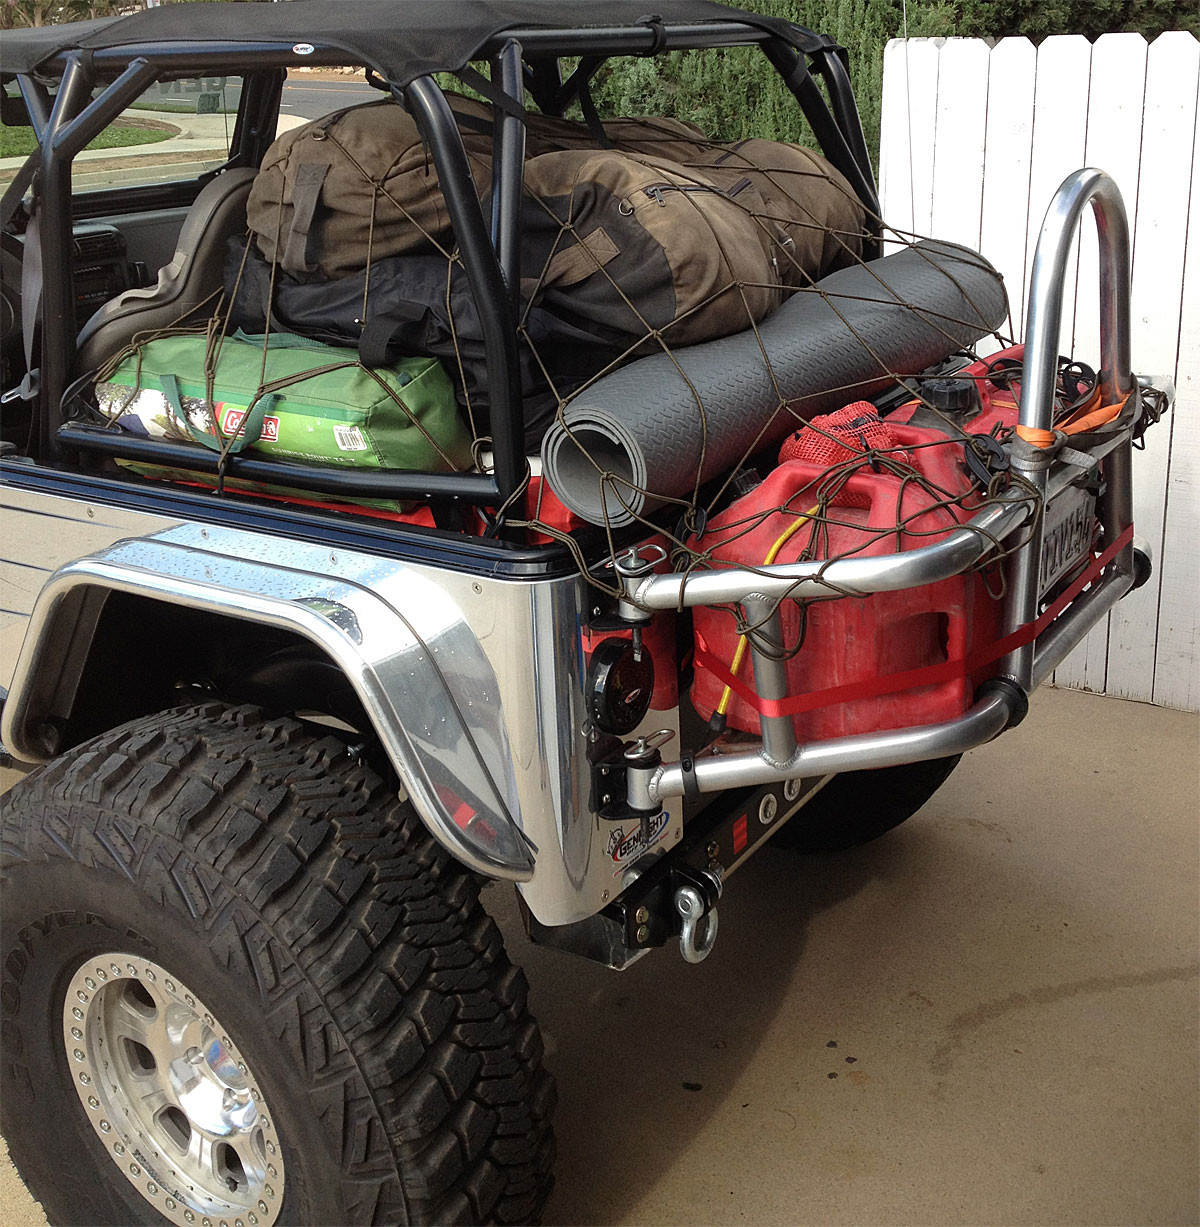 Tony uses the cargo rack for carrying extra gear to go camping on the Rubicon